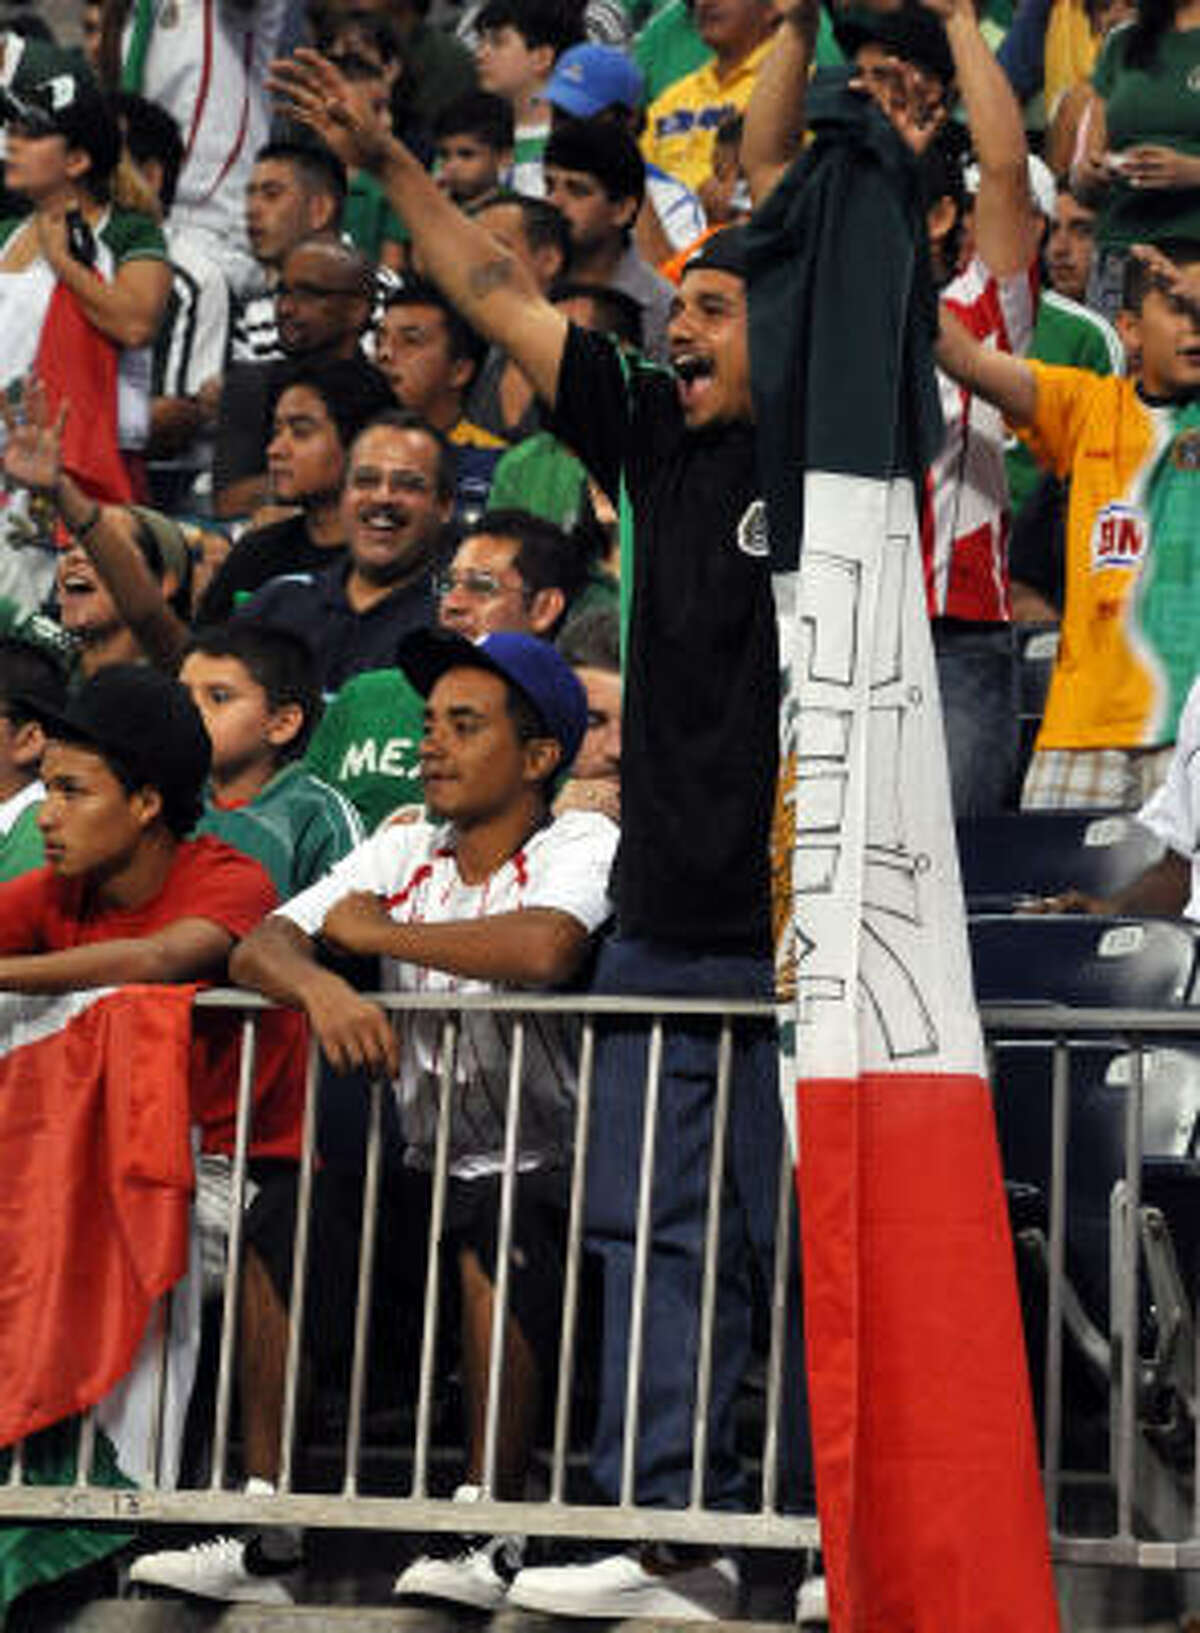 A rowdy Mexico fan heckles a Panama player for allegedly taking a dive.